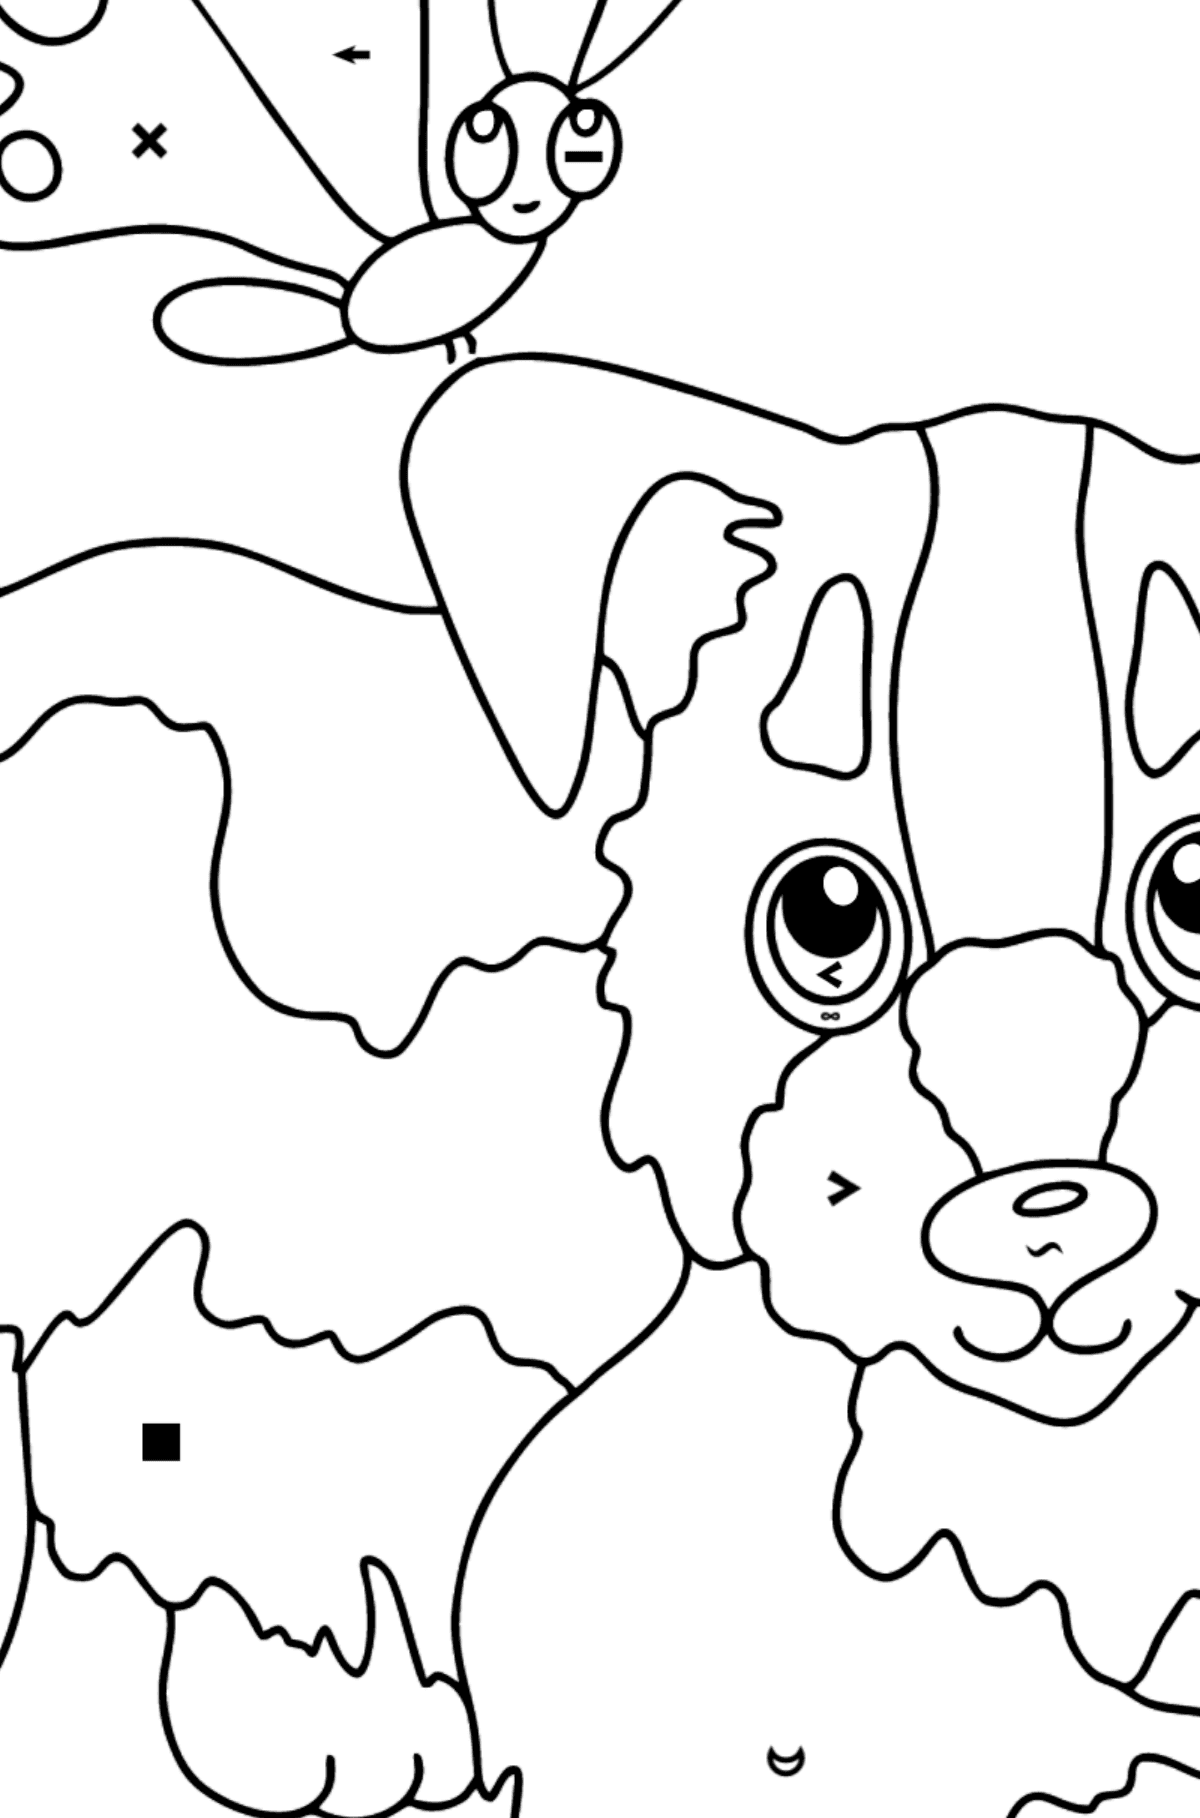 Coloring Page - A Dog is Playing with a Beautiful Butterfly - Coloring by Symbols for Kids